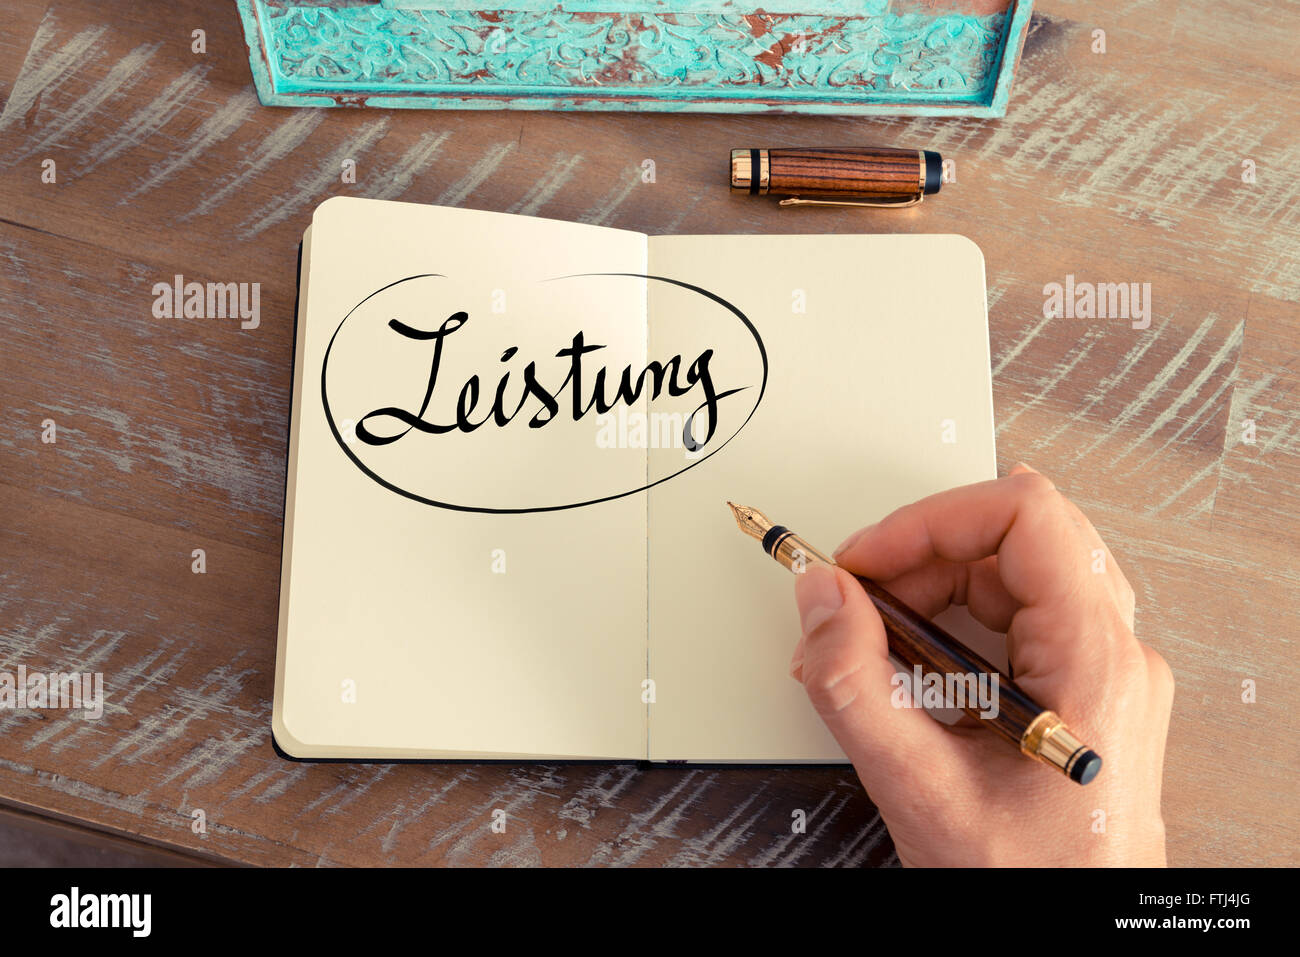 Handwritten text in German 'Leistung '  - translation : Power as business concept image - Stock Image